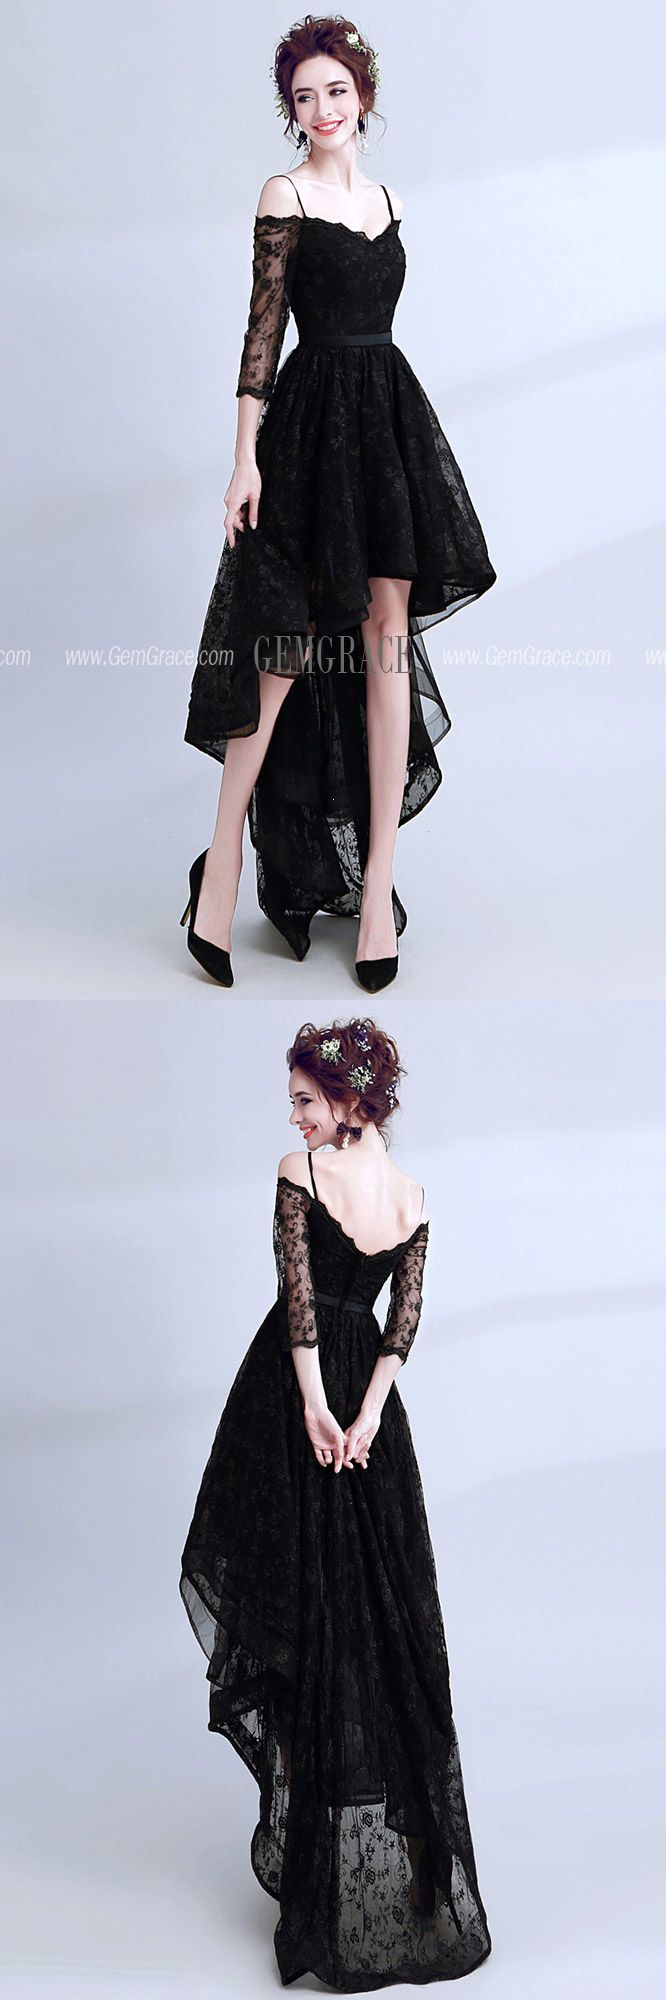 High Low Black Lace Prom Dress Sleeved With Spaghetti ...